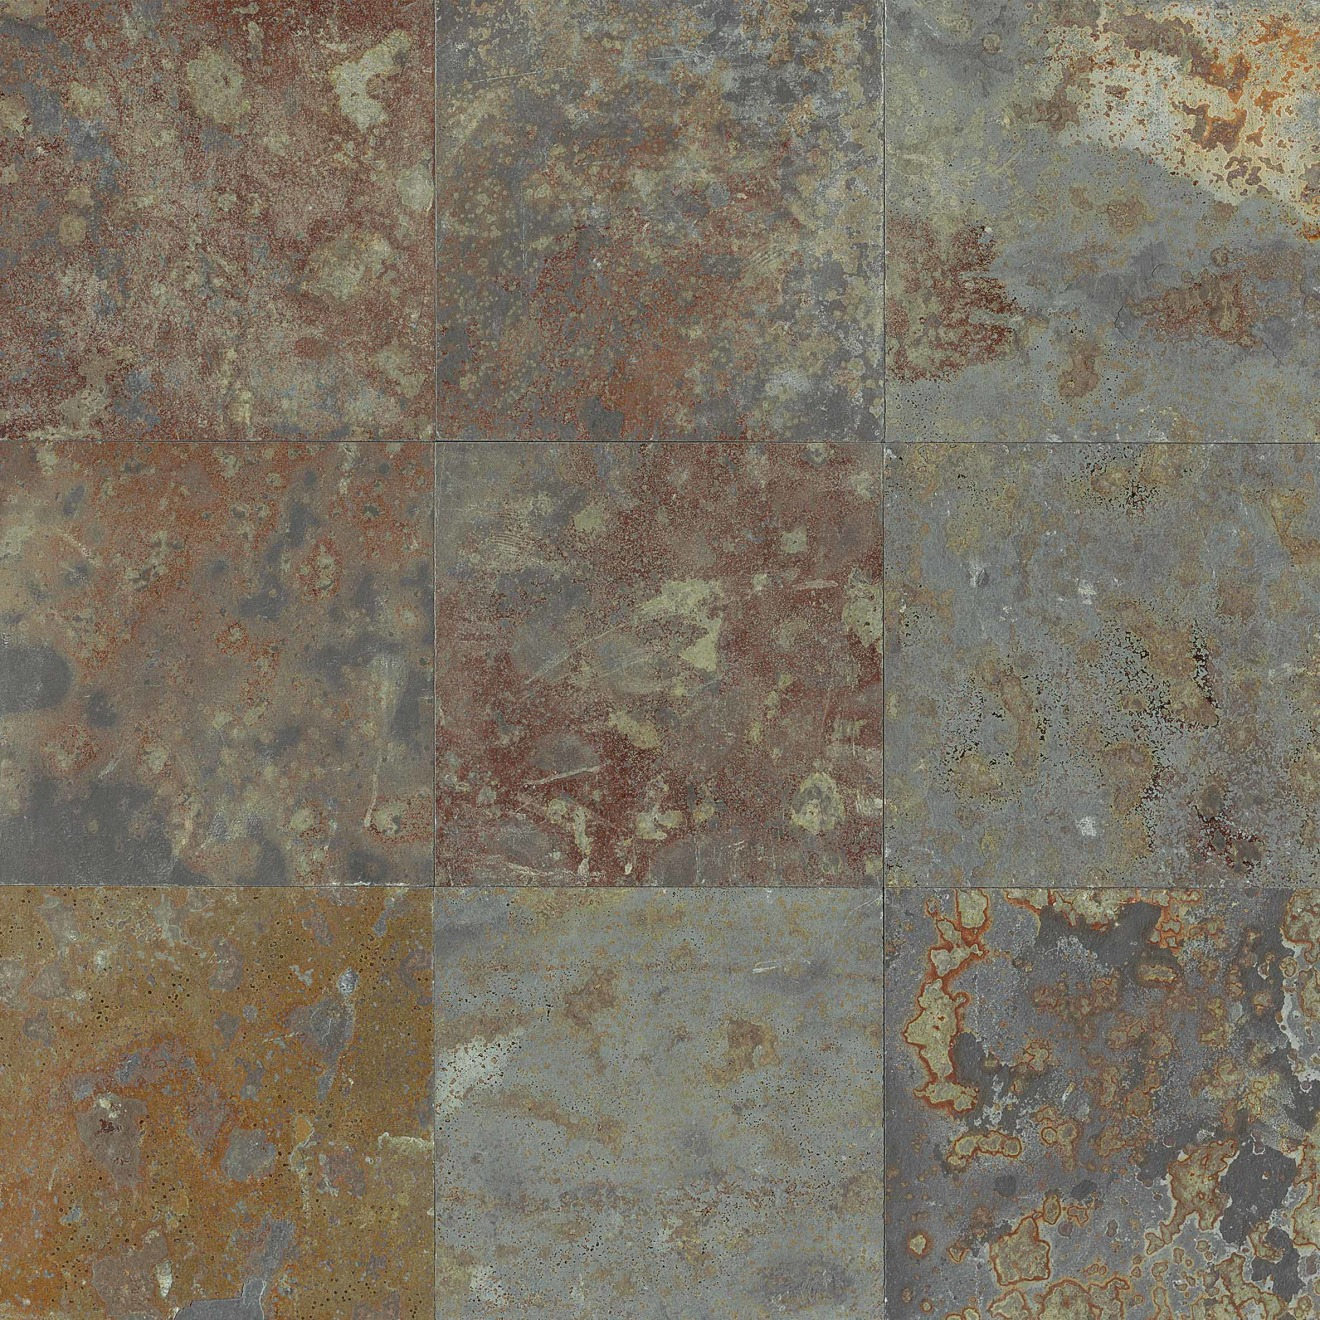 Brazilian Multicolor X X Floor And Wall Tile - 8x8 slate tile